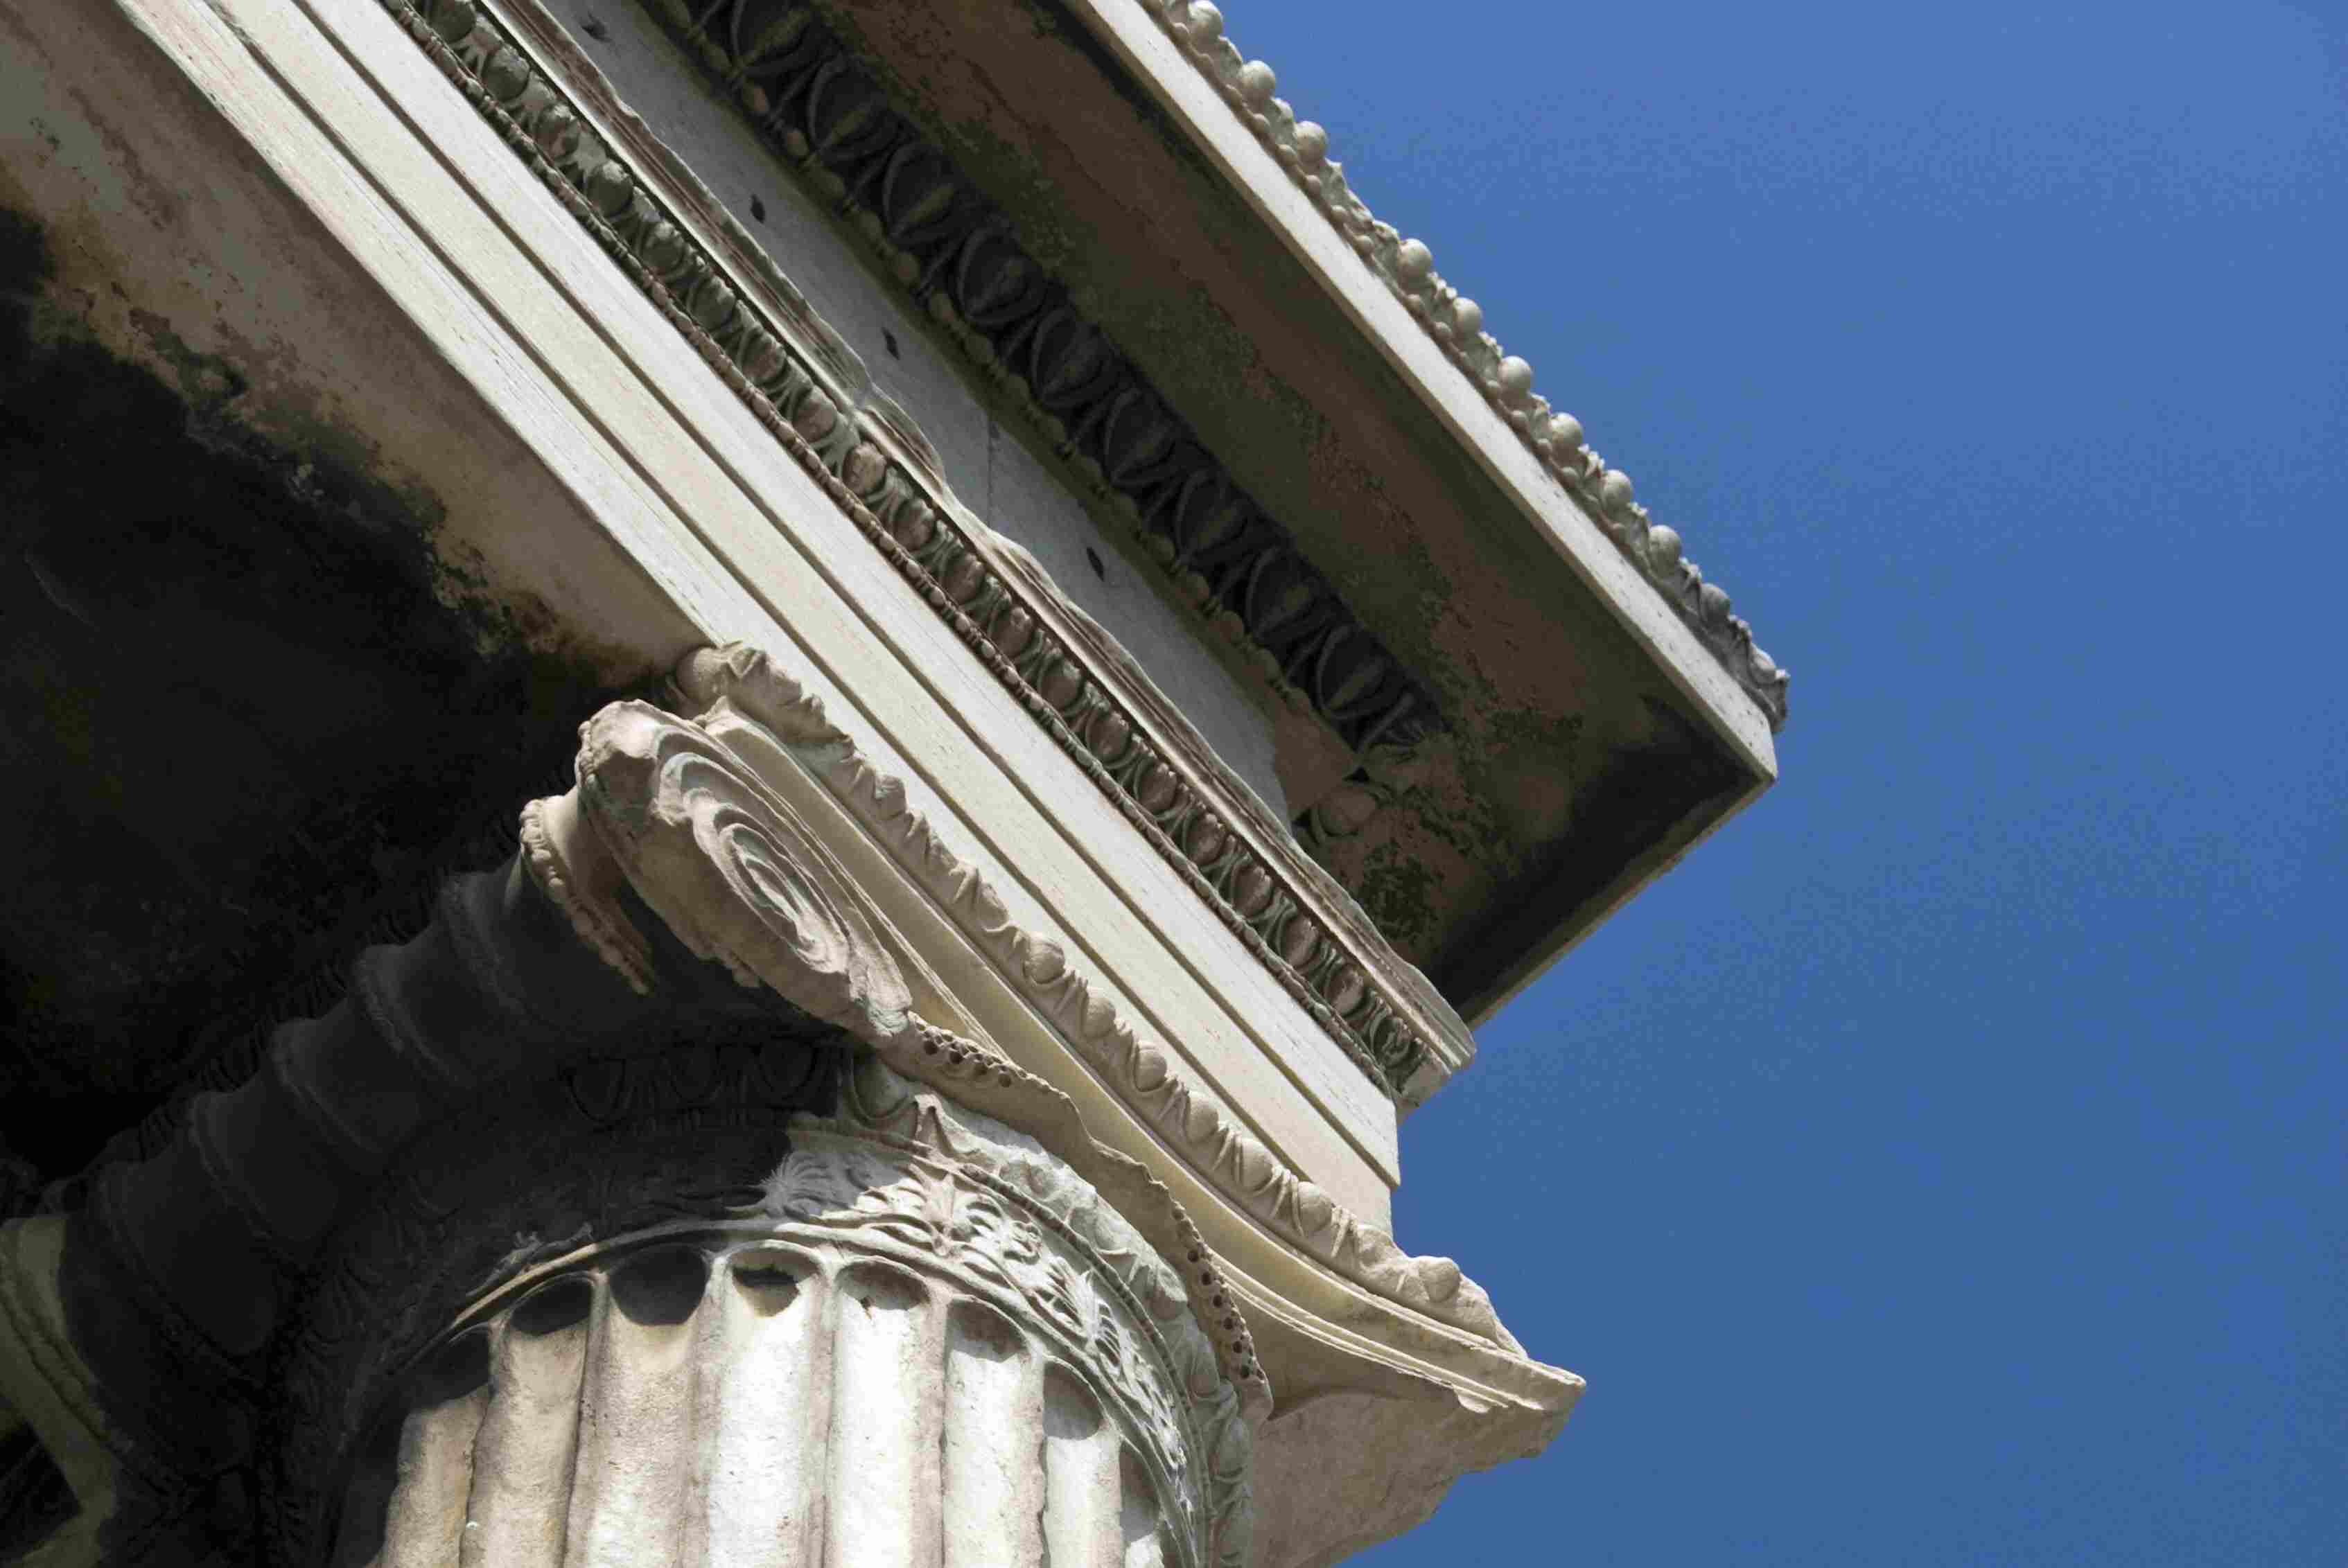 Detail of the marble Ionic columns, architrave, frieze and cornice of the Erechtheion on the Acropolis, Athens, Greece